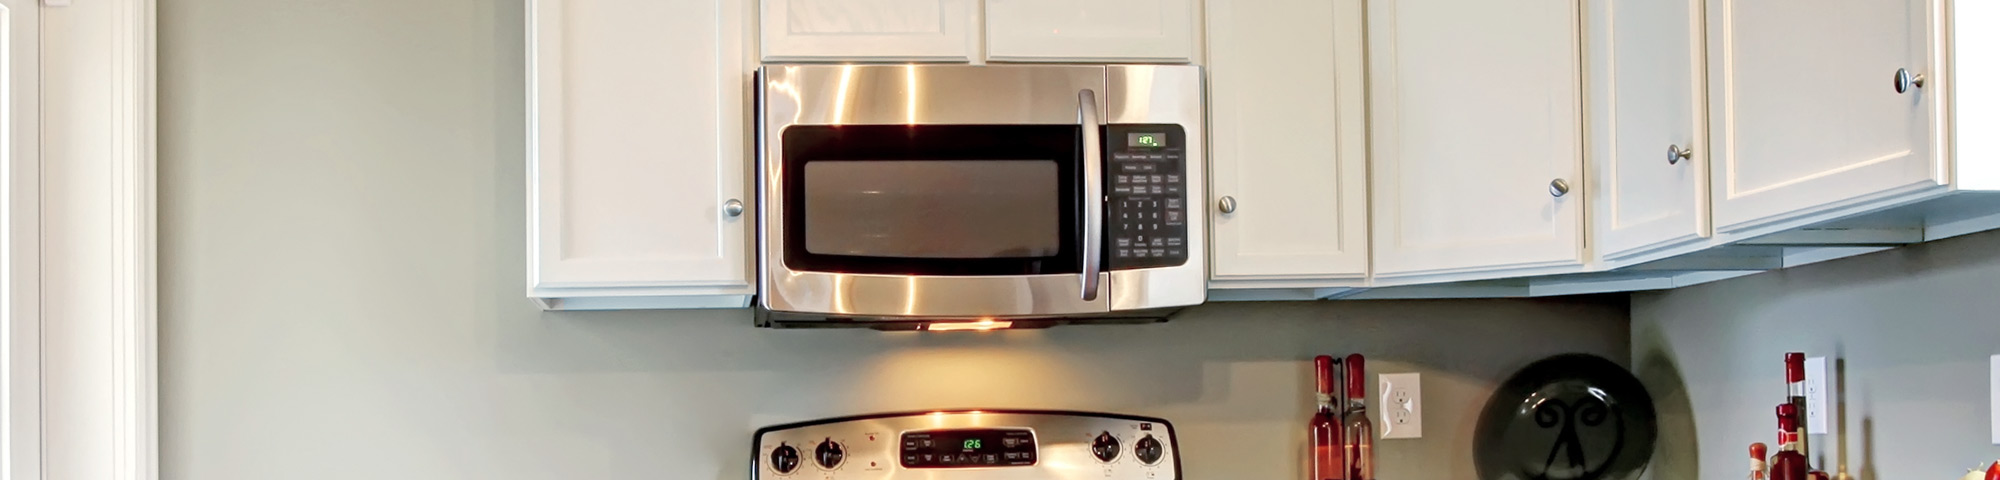 Best Over The Range Microwaves 2019 Vented Microwave